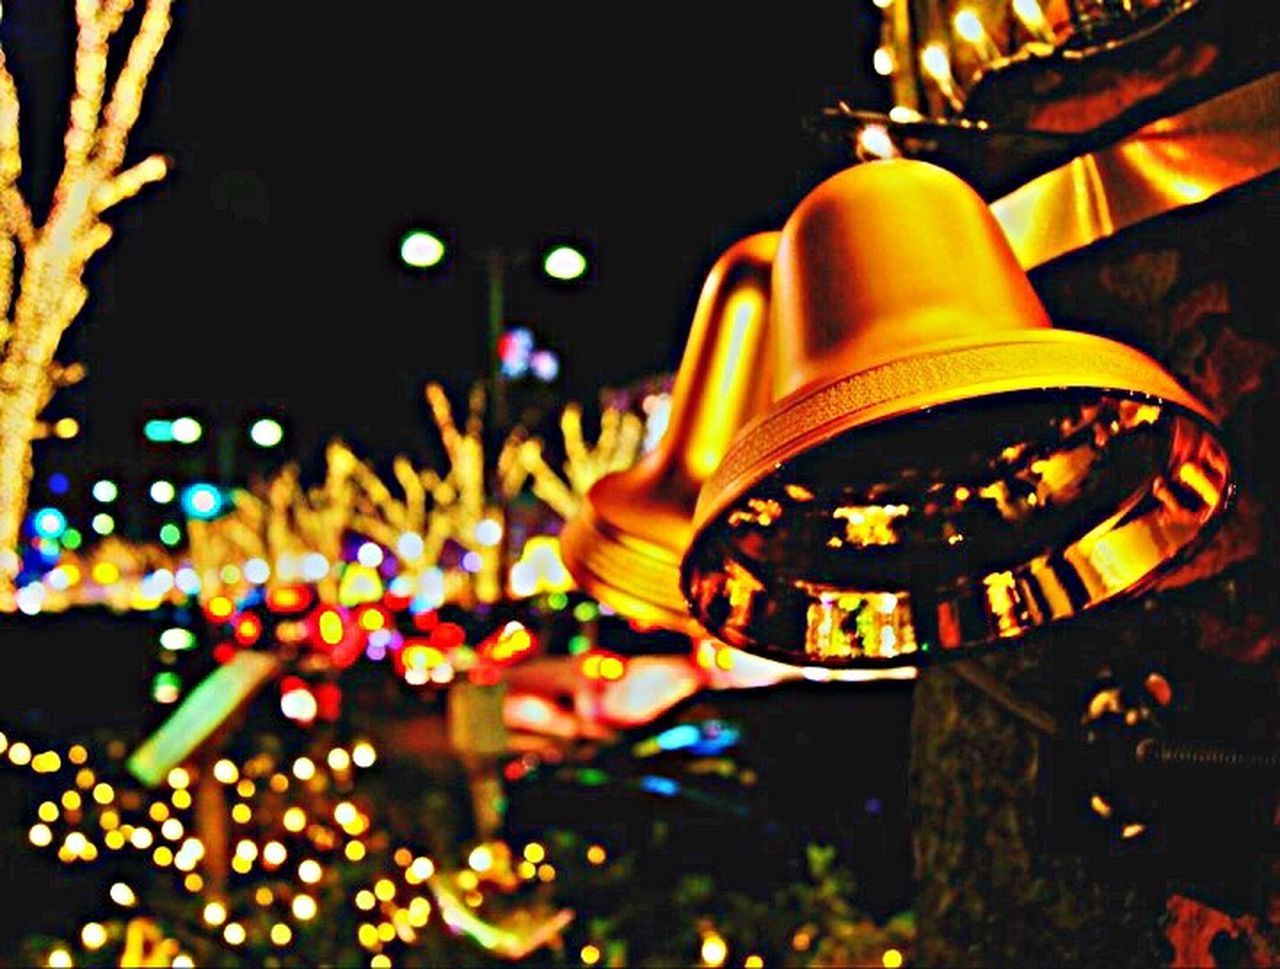 Light And Shadow Bokeh Golden Hour Lihgtpainting Night Lights Hello World Hello World Canon EOS 7D Mark II Stockphoto EyeEm Gallery Stockphotography EyeEm Best Shots Low Angle View Low Angle Street Check This Out